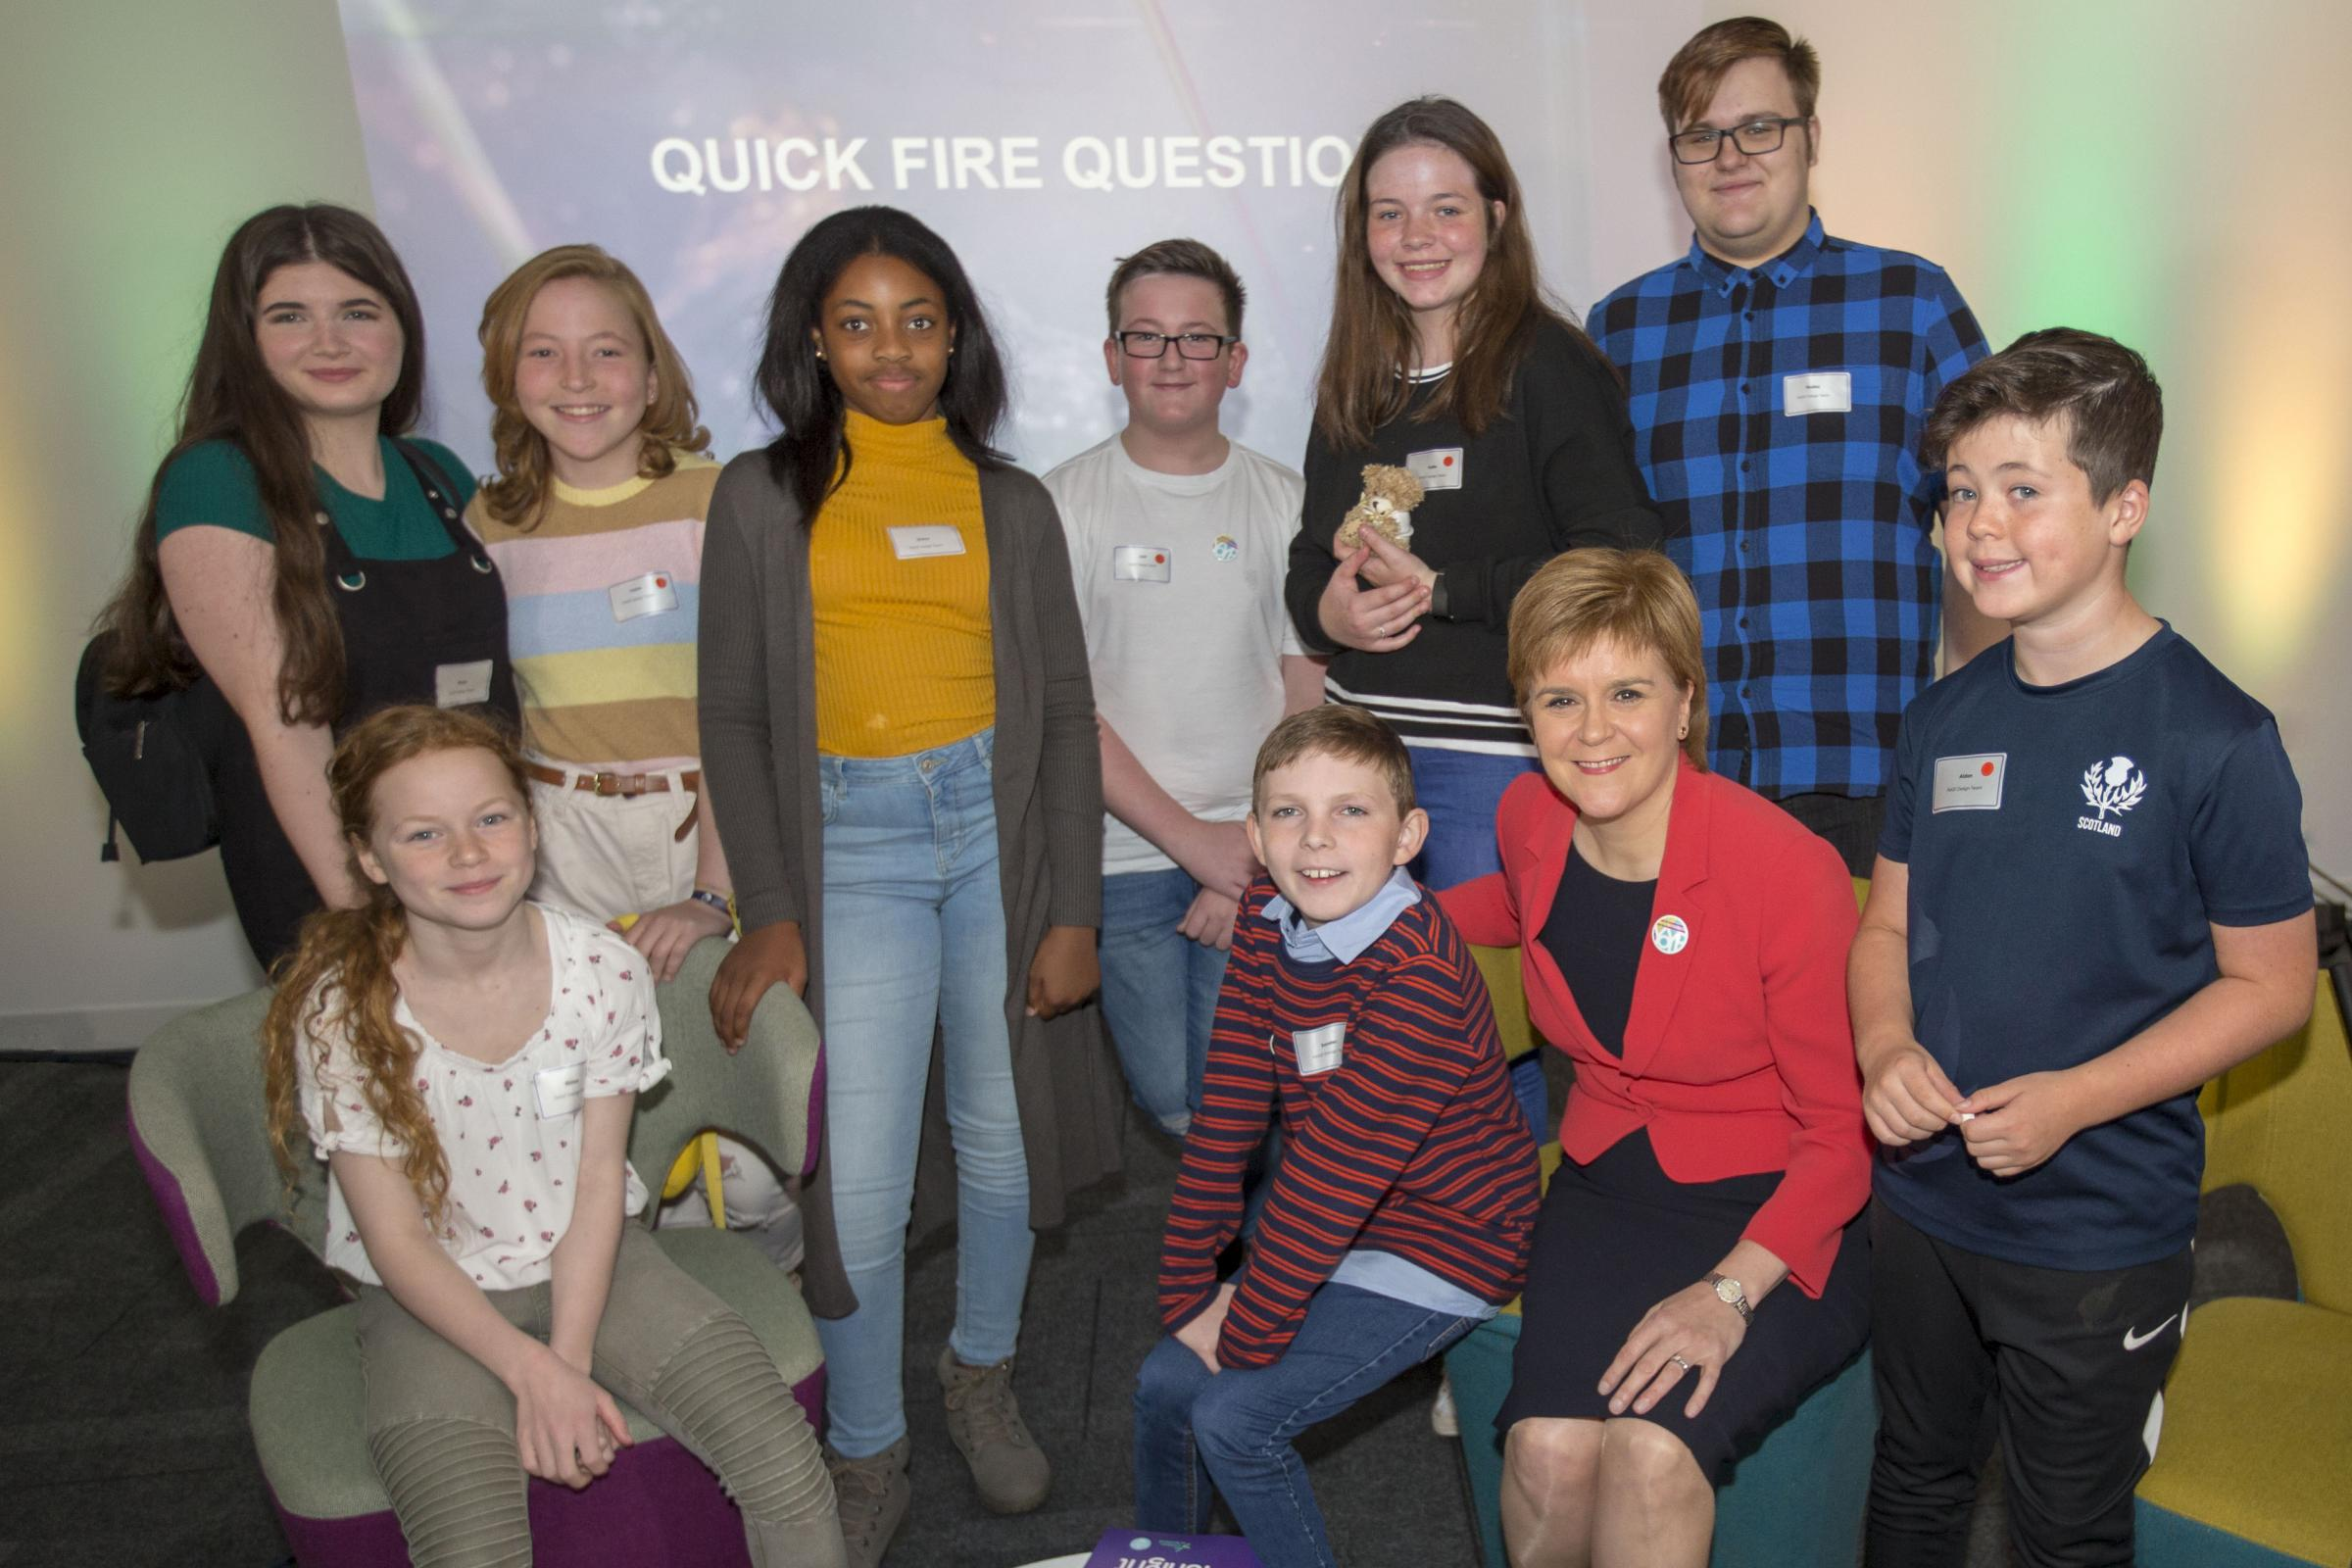 Nicola Sturgeon meets young people at the First Minister's Question Time Next Generation event in 2018